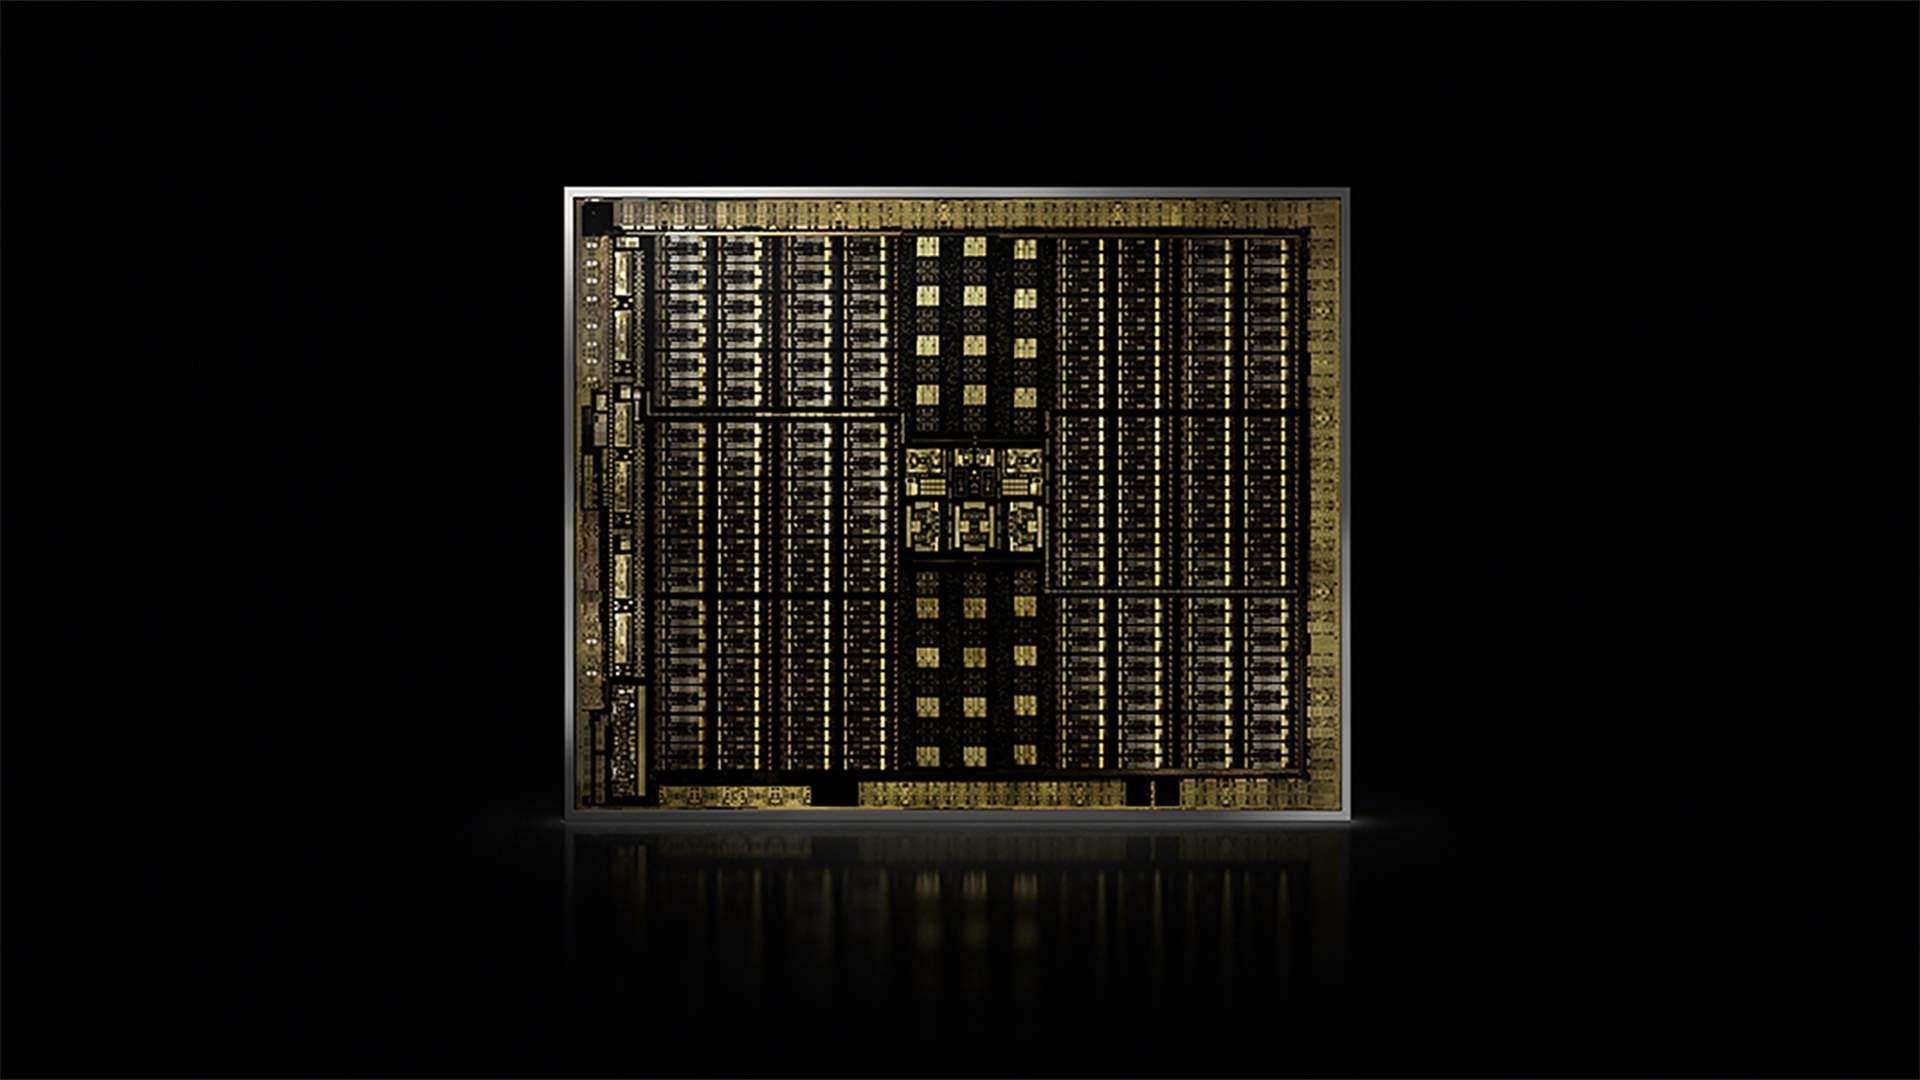 Nvidia's next GPU generation: Made by Samsung in 7 nm